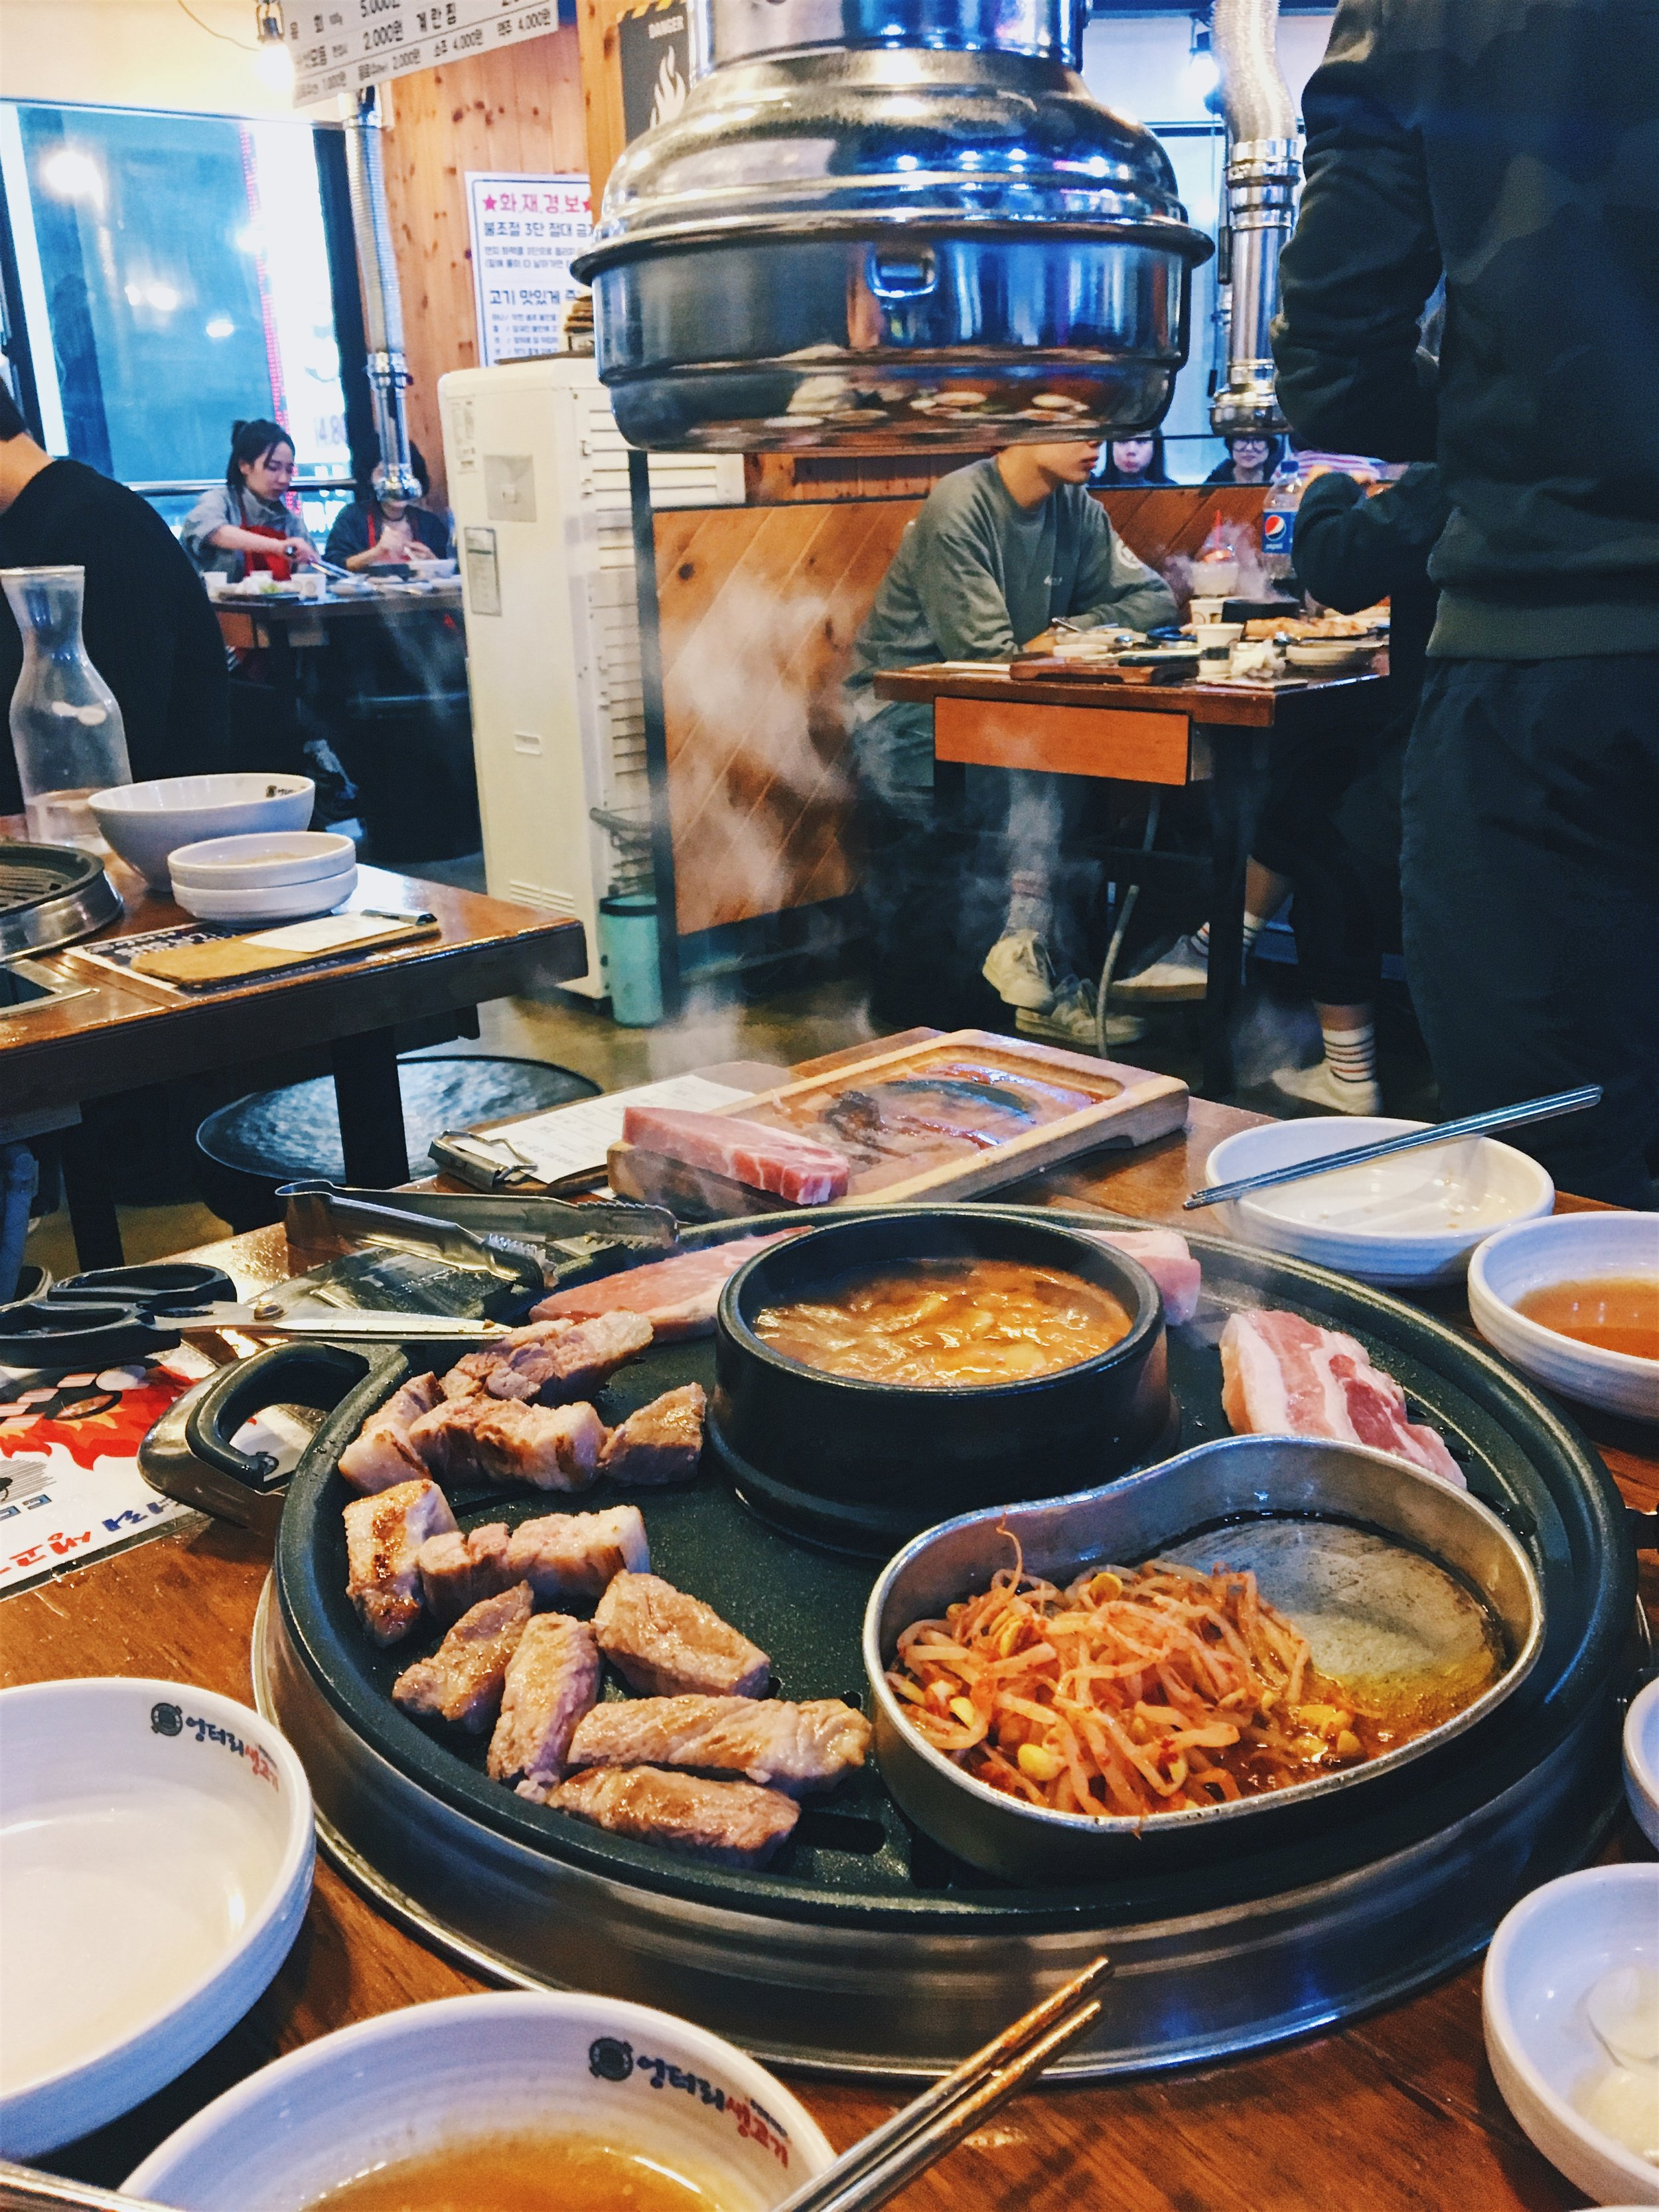 All-you-can-eat BBQ called Ungteori in Myeongdong for 14,800KRW - cheap! But you only get 2 cuts of meat: pork or beef.